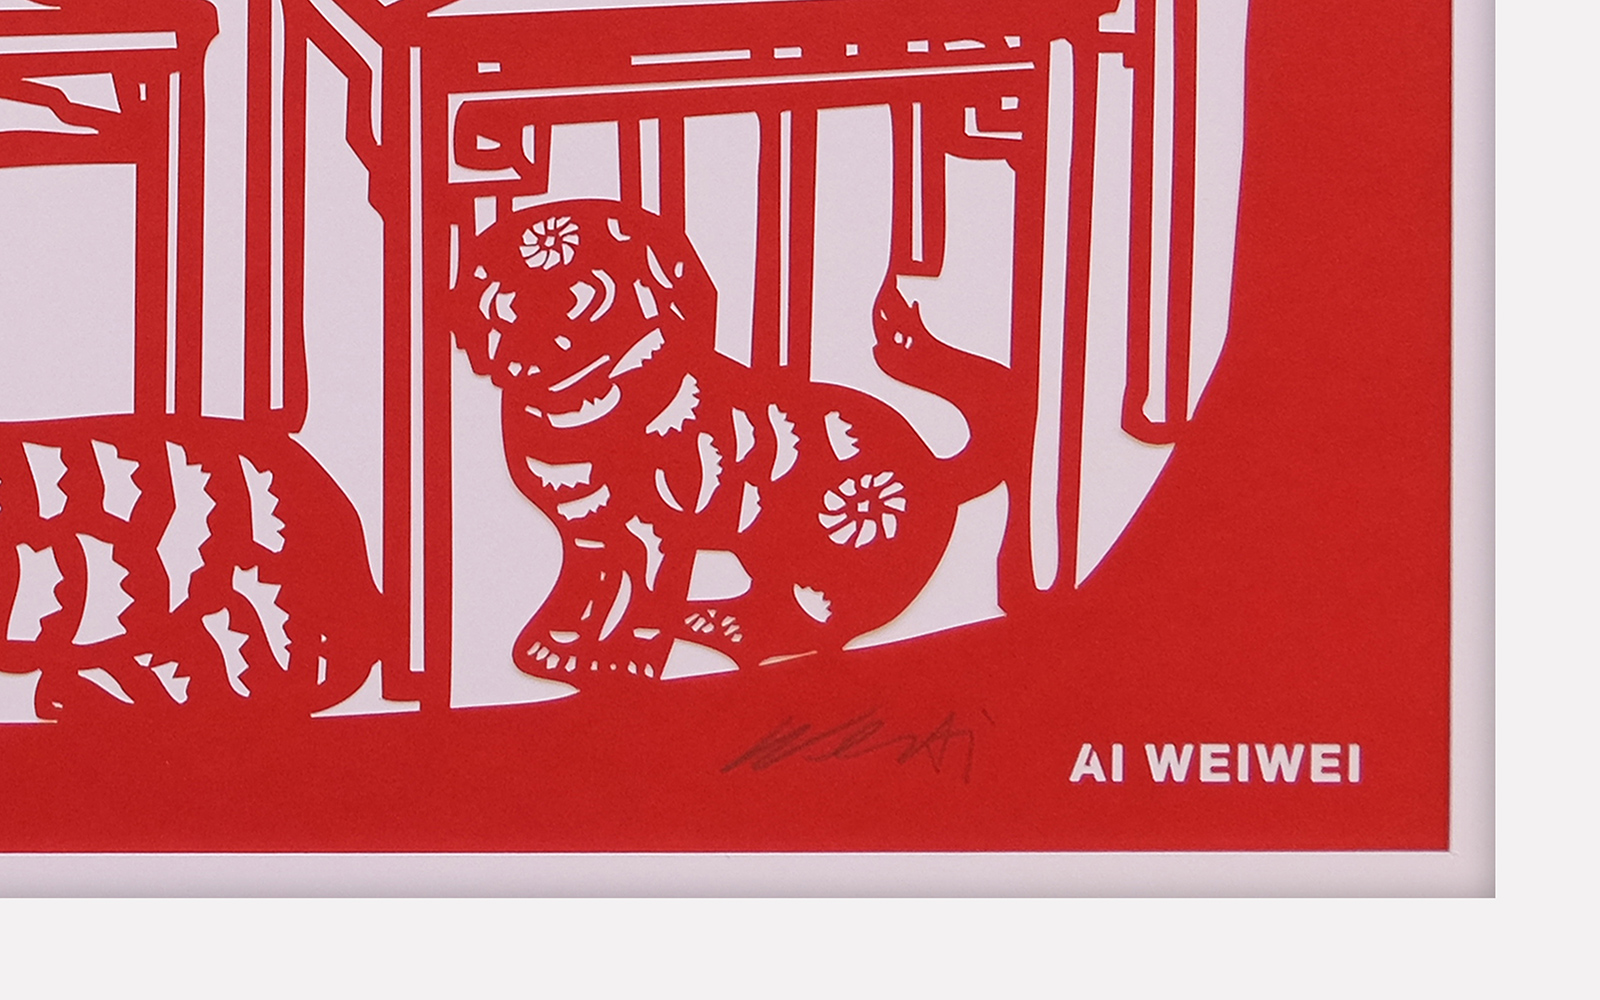 CATS AND DOGS - Ai Weiwei